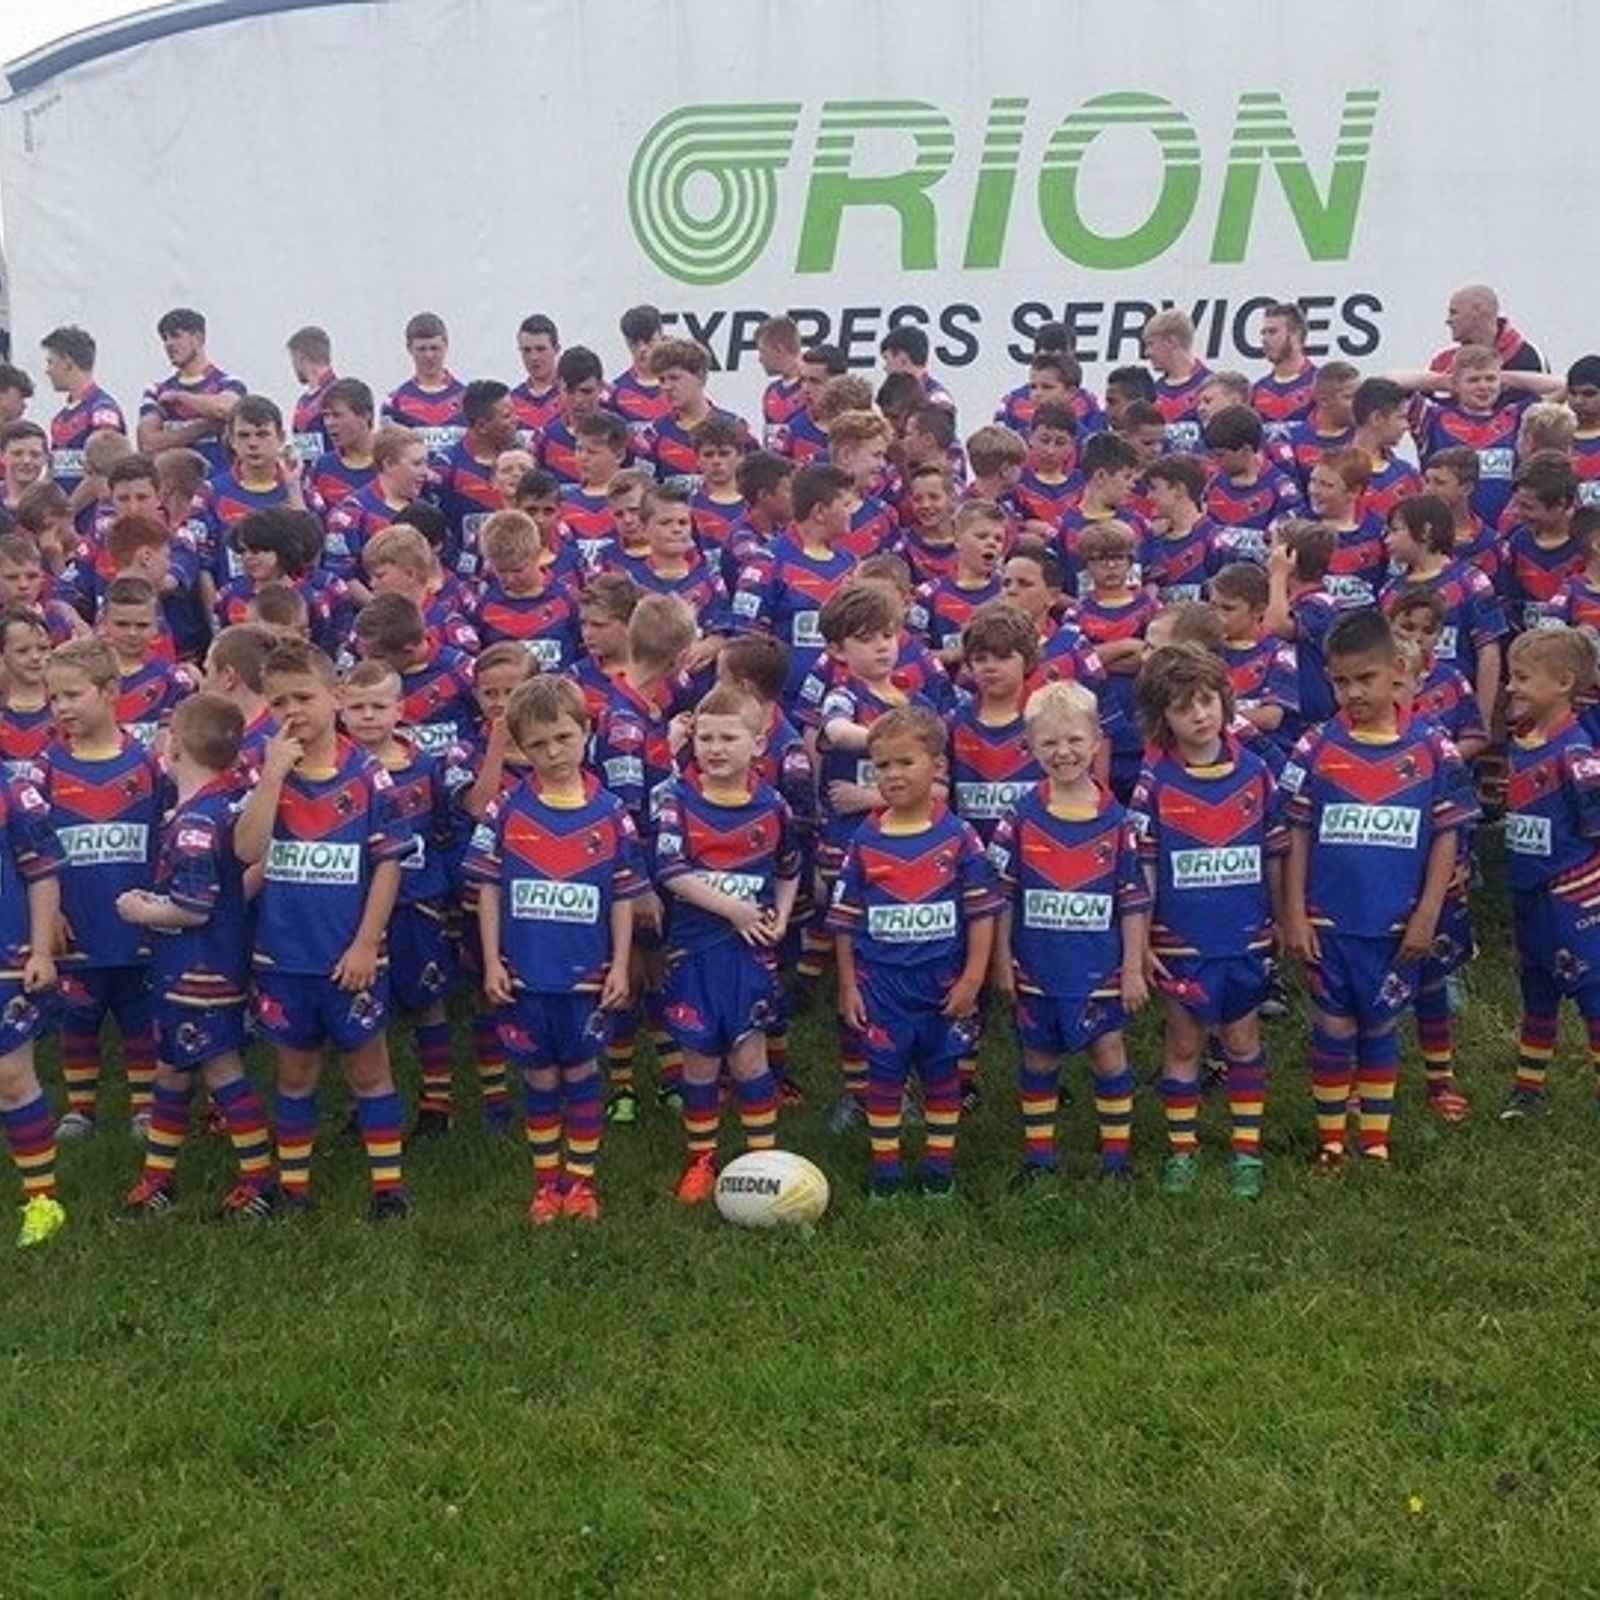 Photoshoot with our New sponsor Orion Express Services